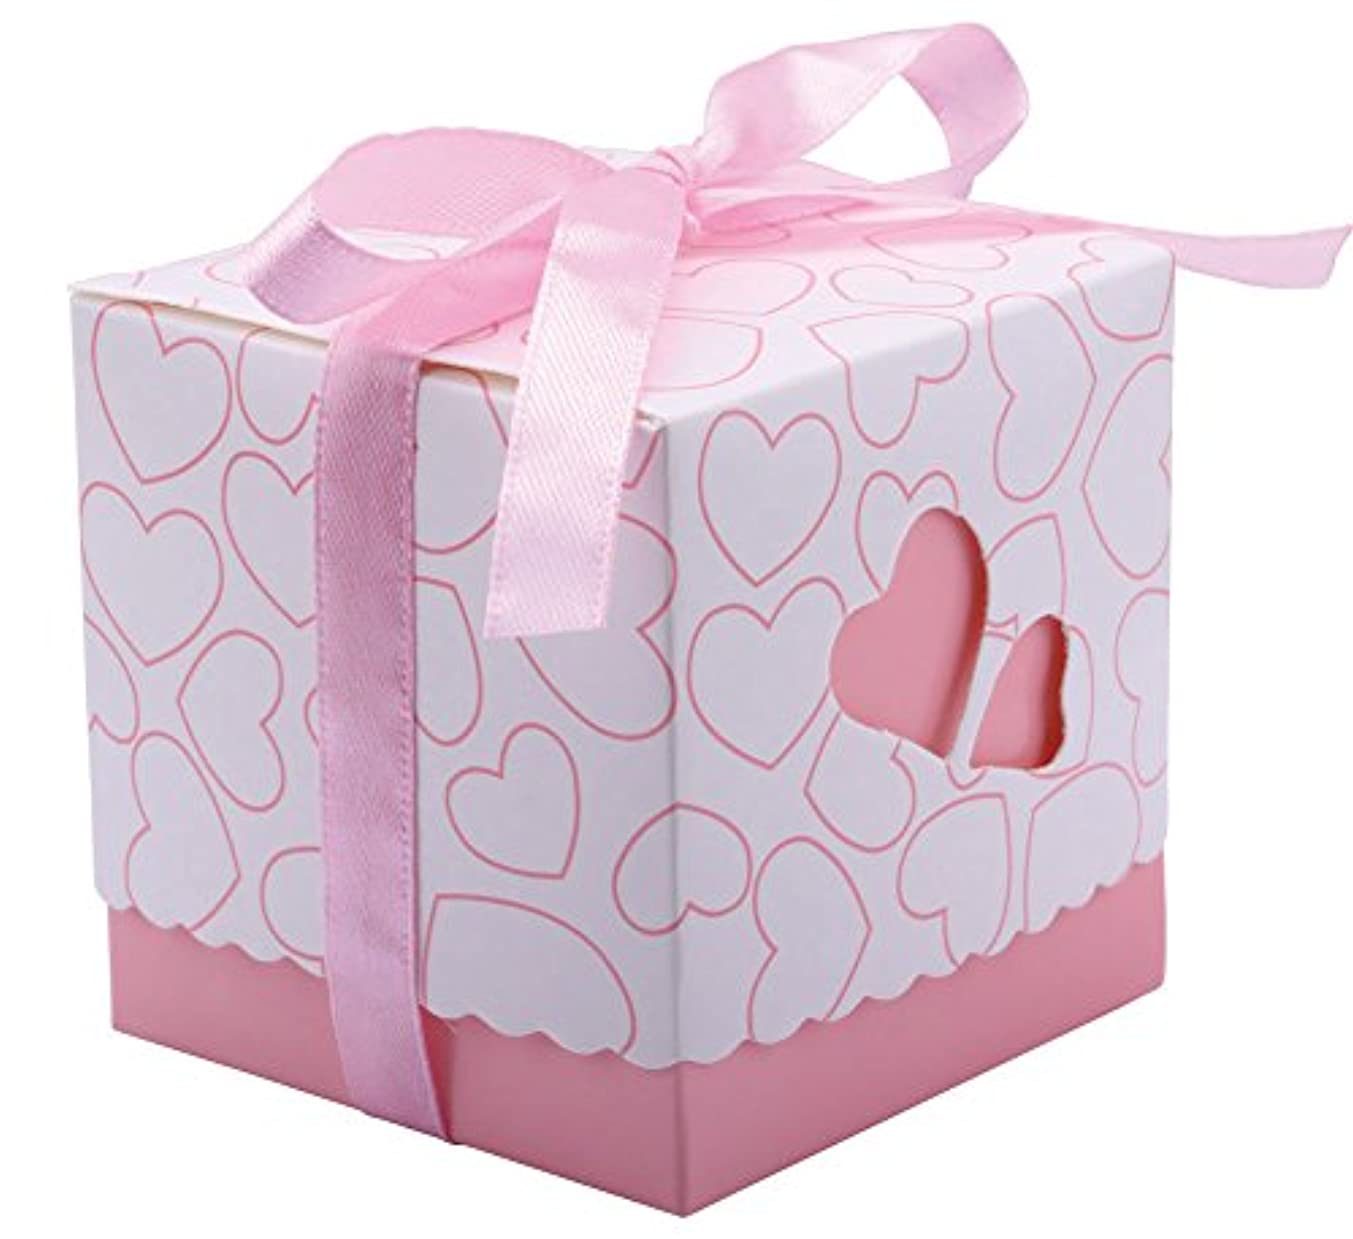 DriewWedding Set of 50 Wedding Bridal Favor Gift Candy Boxes Case, Hollow Heart Shape Wrap Boxs Bag with Ribbon Party Table Decor Kit Treat Box Chocolate Candy Wrappers Holders (Pink/ 3